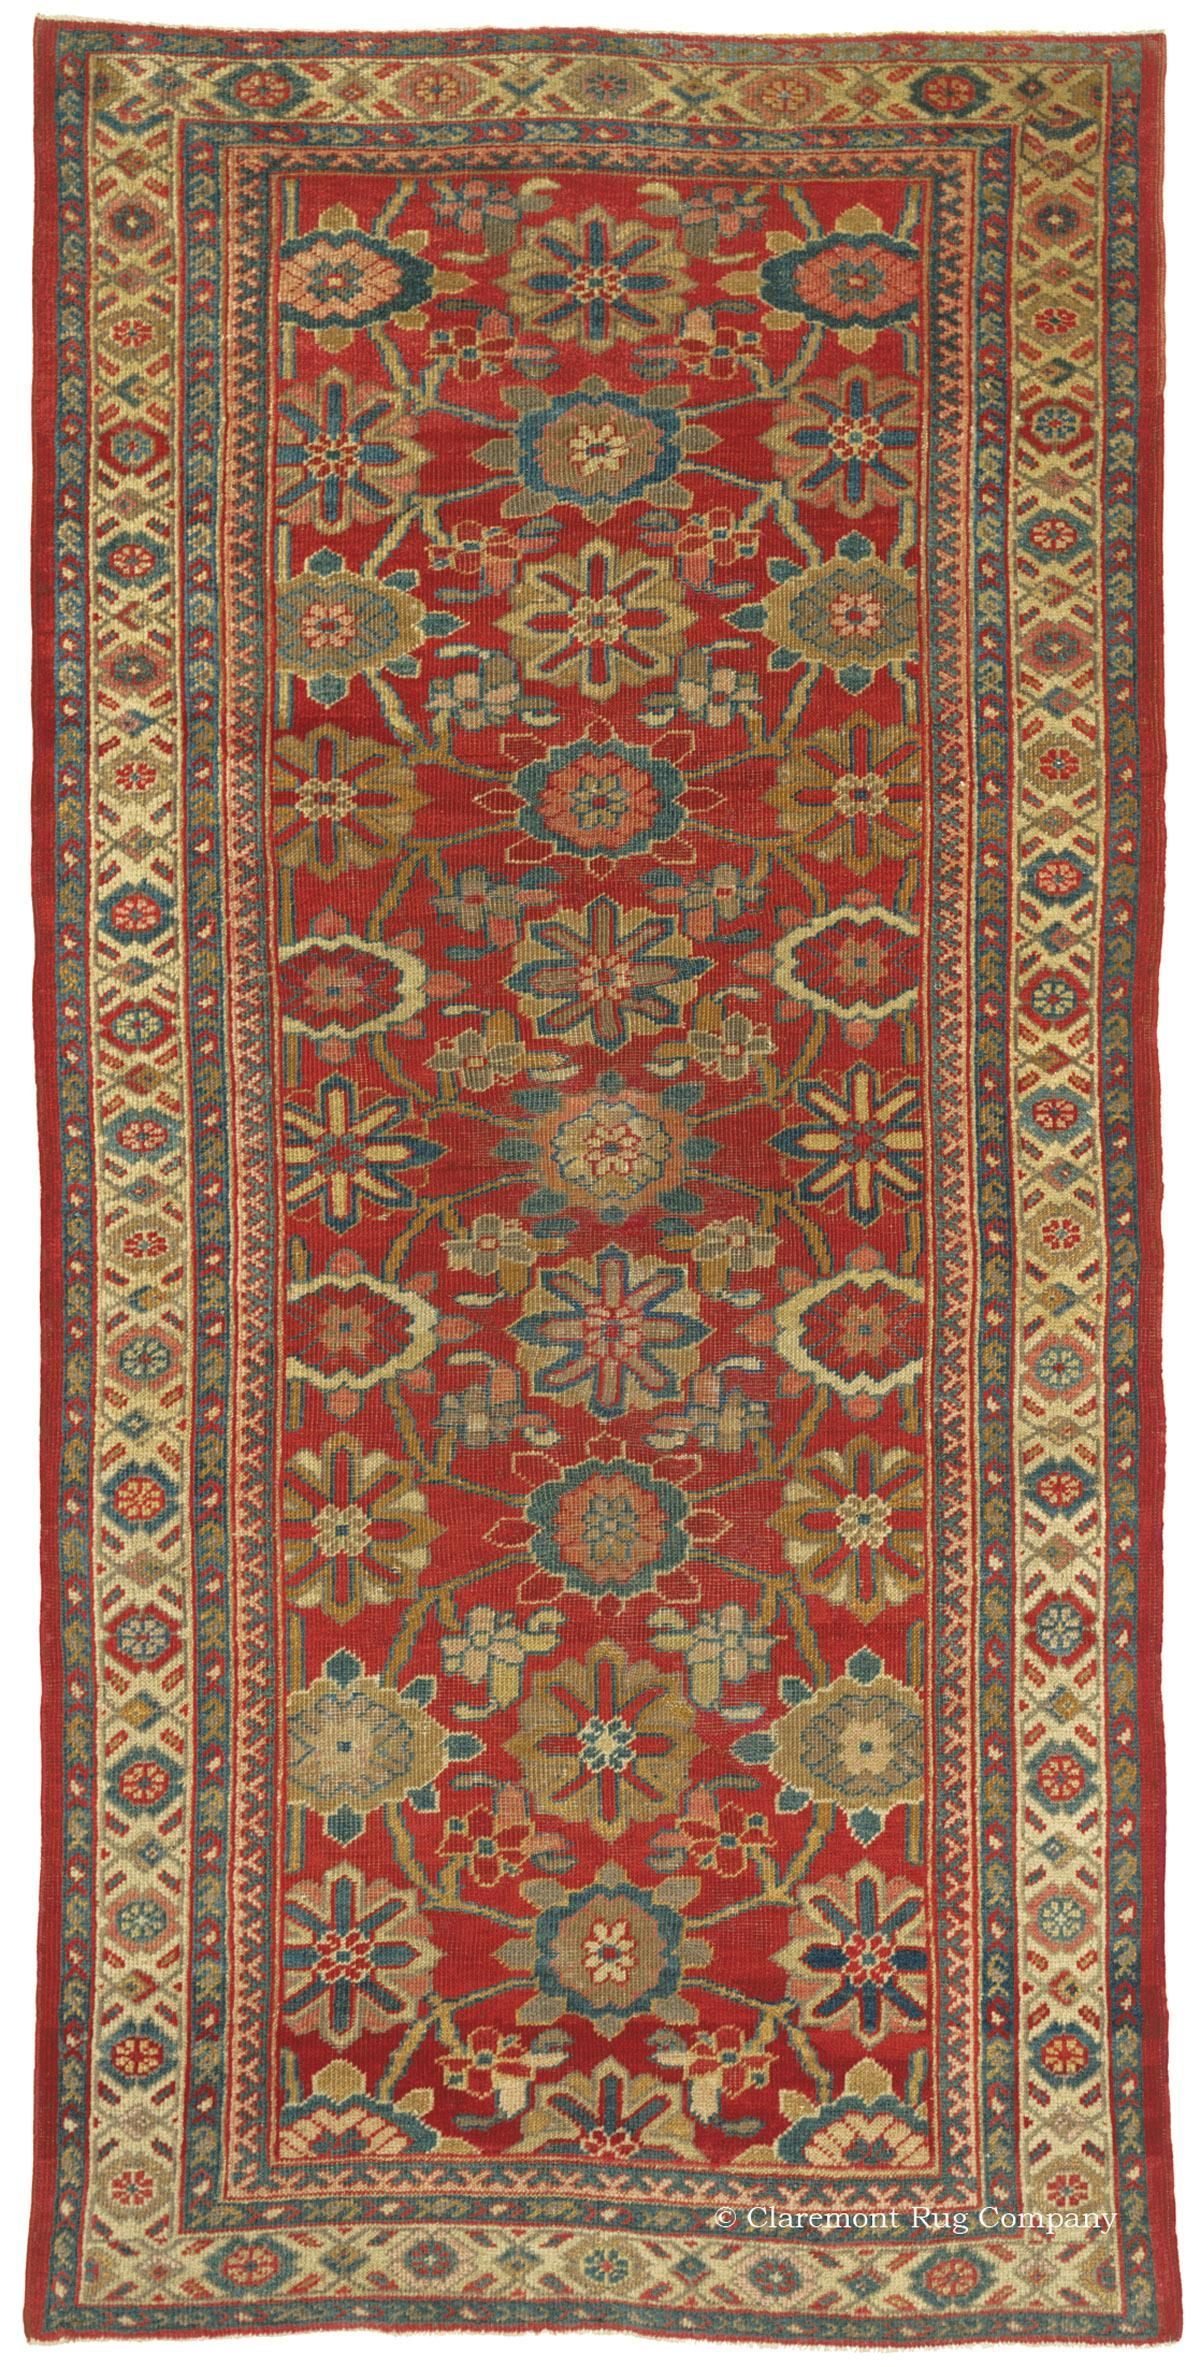 SULTANABAD, West Central Persian 3ft 4in x 6ft 10in Late 19th Century